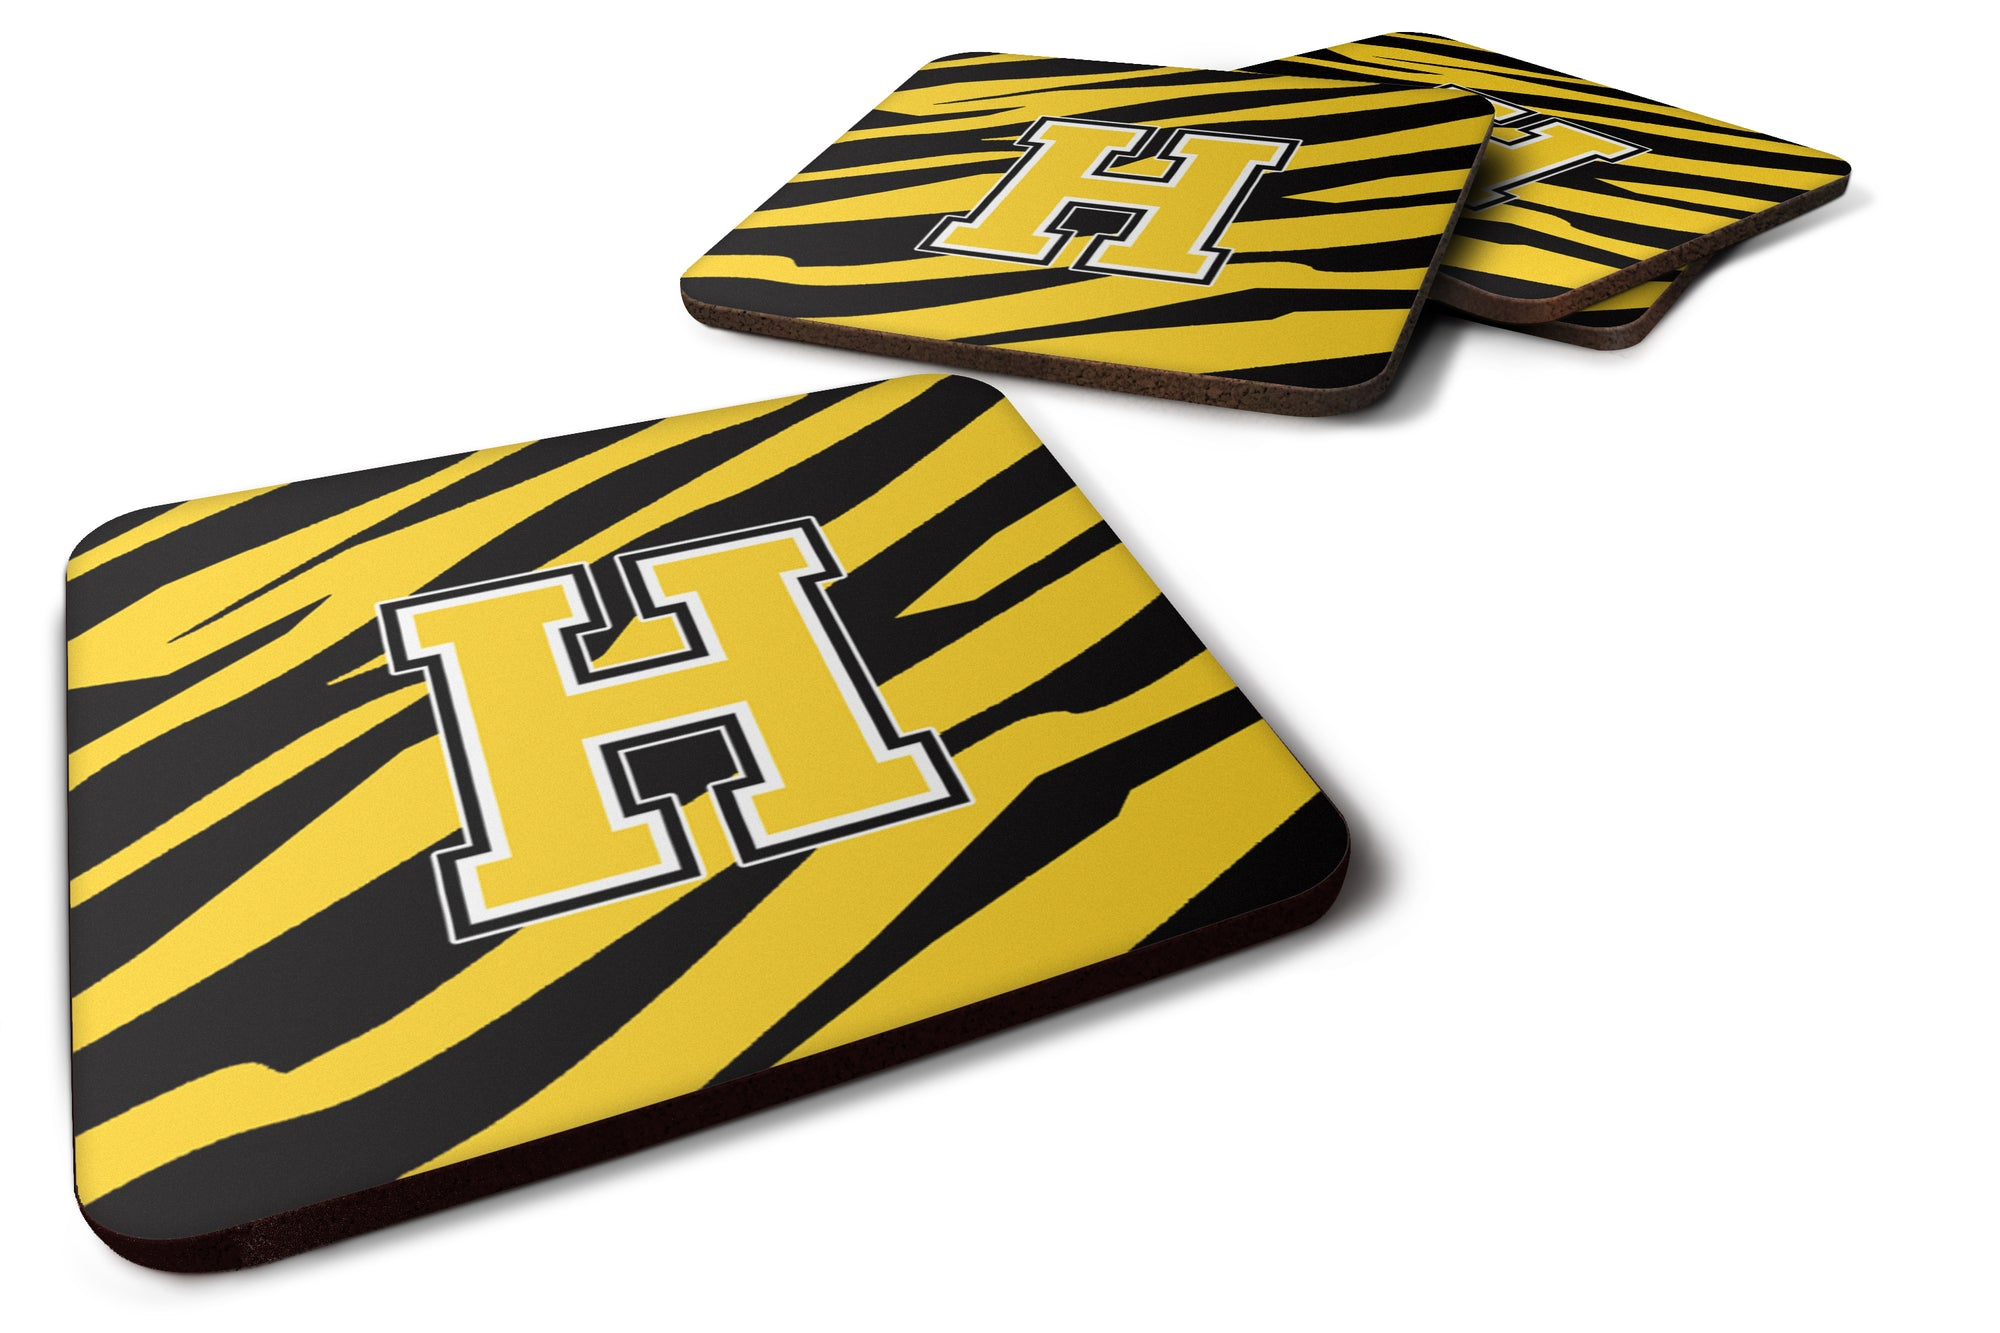 Set of 4 Monogram - Tiger Stripe - Black Gold Foam Coasters Initial Letter H by Caroline's Treasures